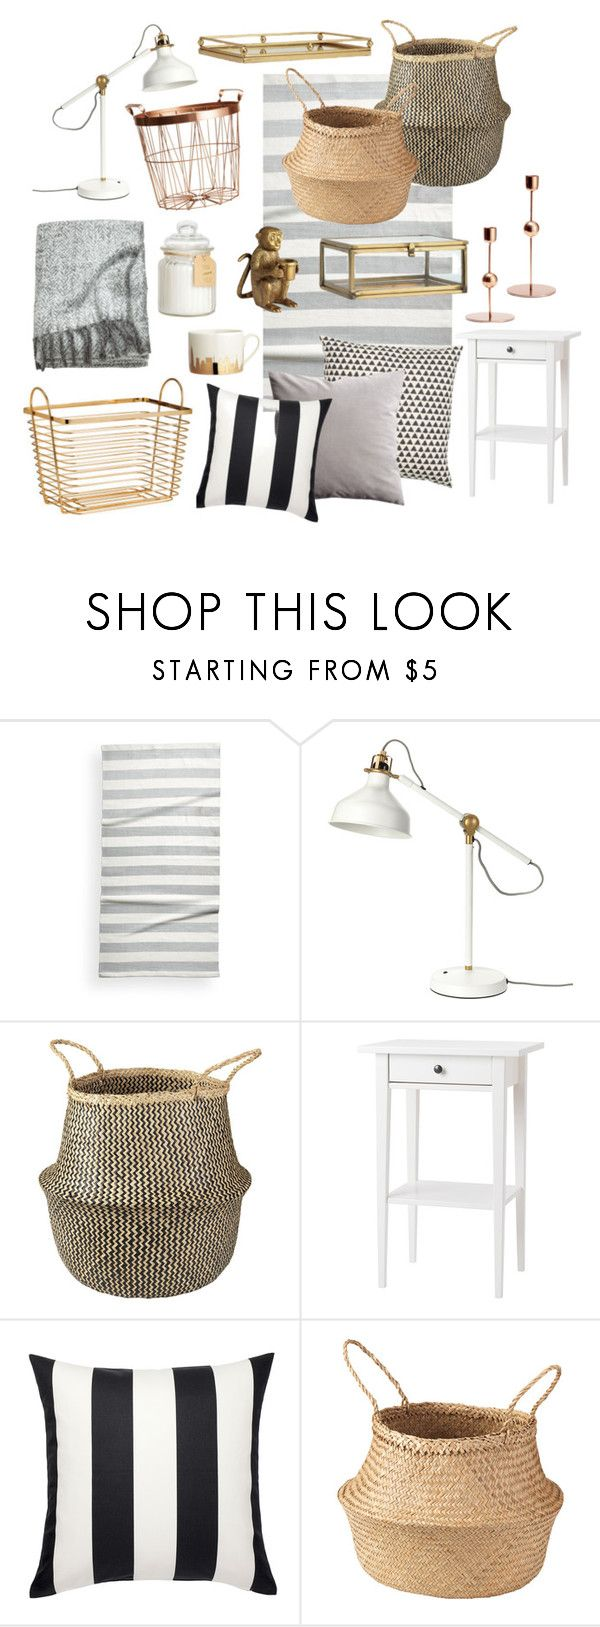 Homeware Wish List by rowanmorrissy4 on Polyvore featuring interior, interiors, interior design, home, home decor, interior decorating and H&M